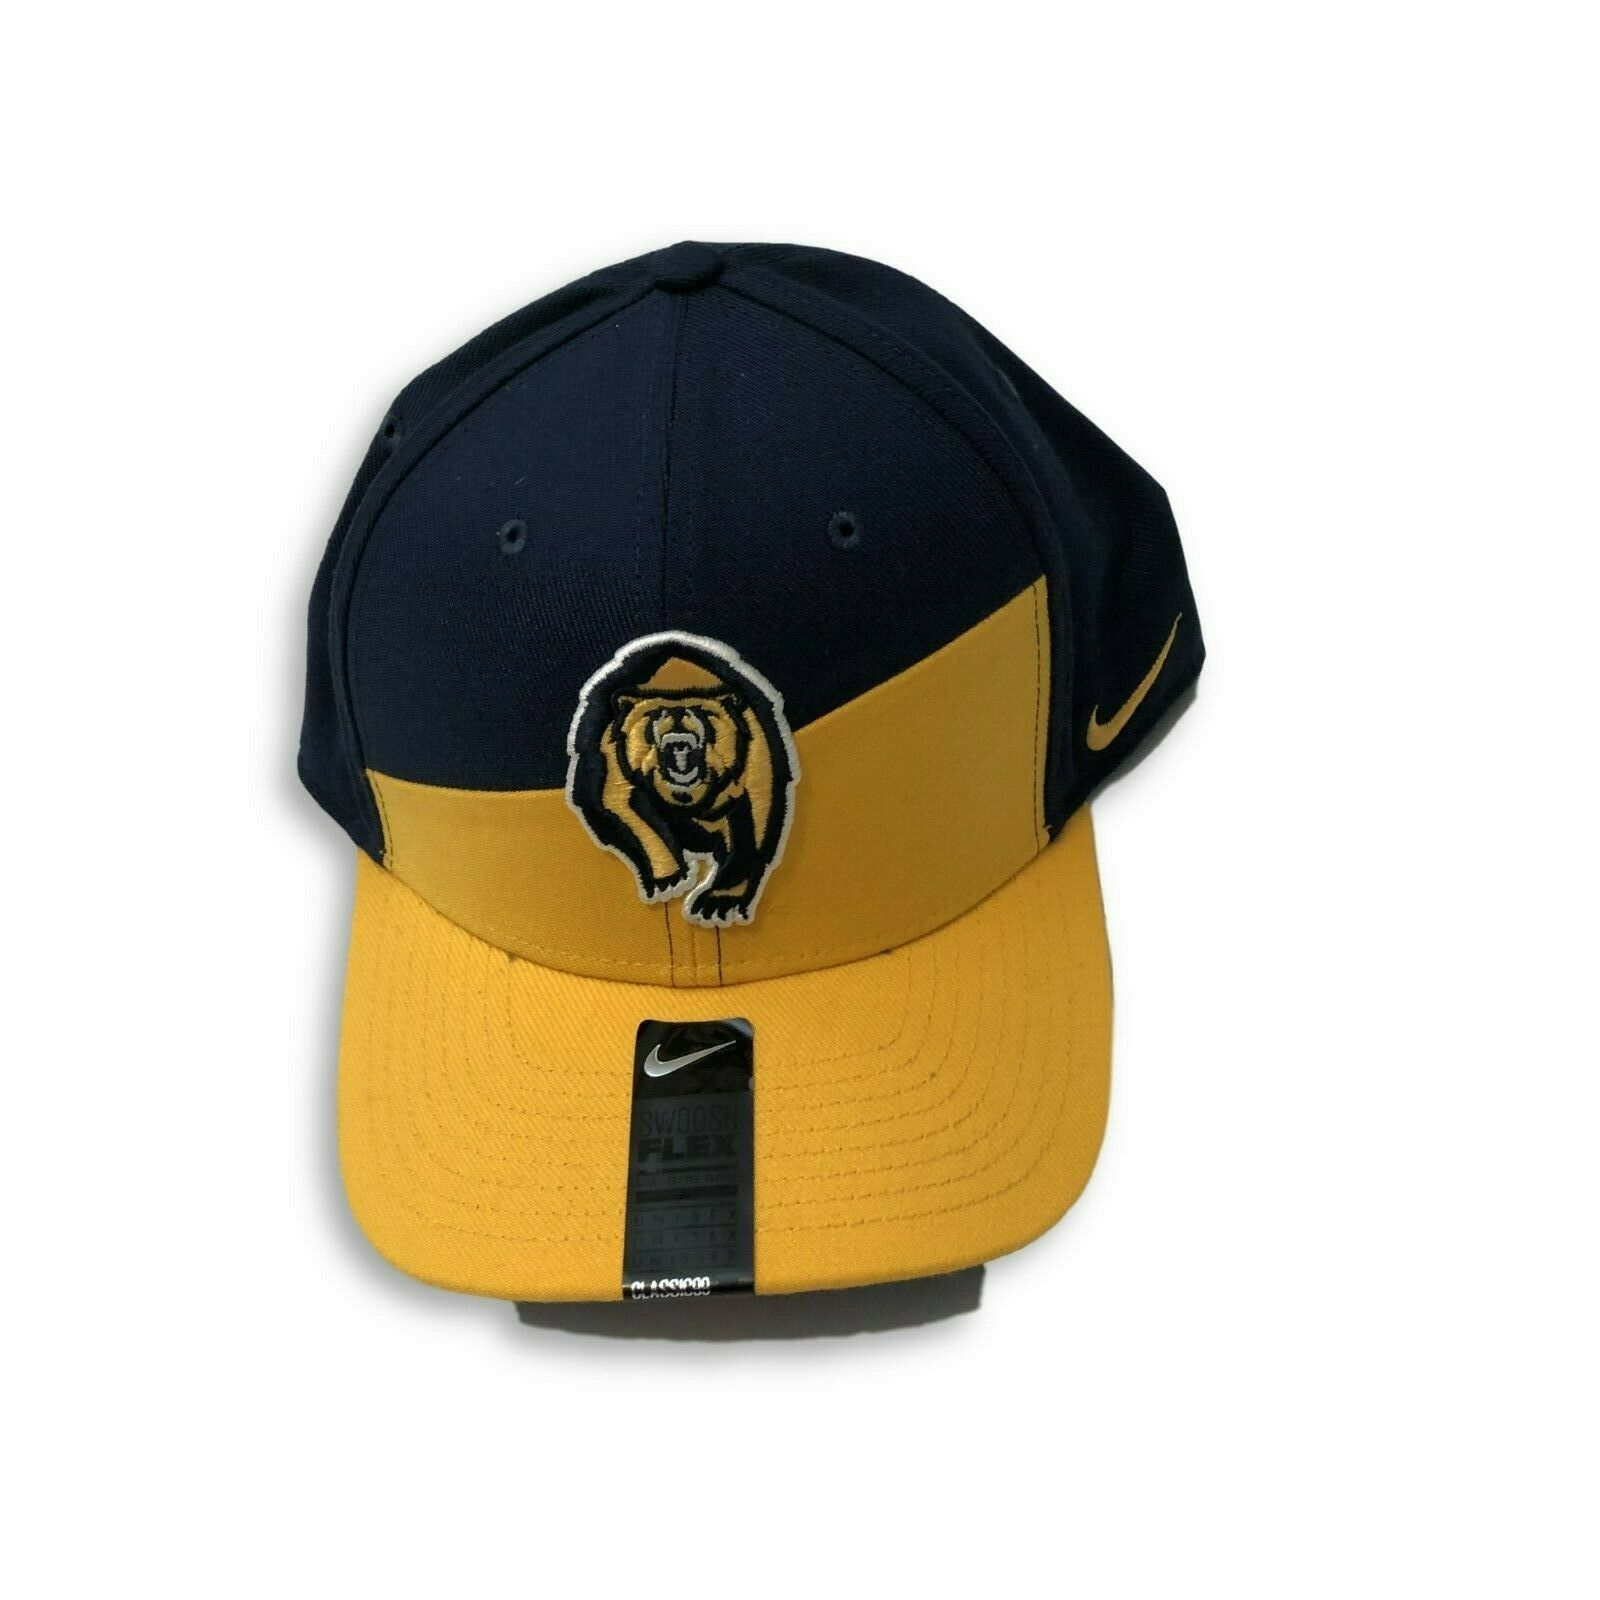 reputable site bedef 741bd NWT New Cal Golden Bears Nike Dri-Fit and 50 similar items. S l1600